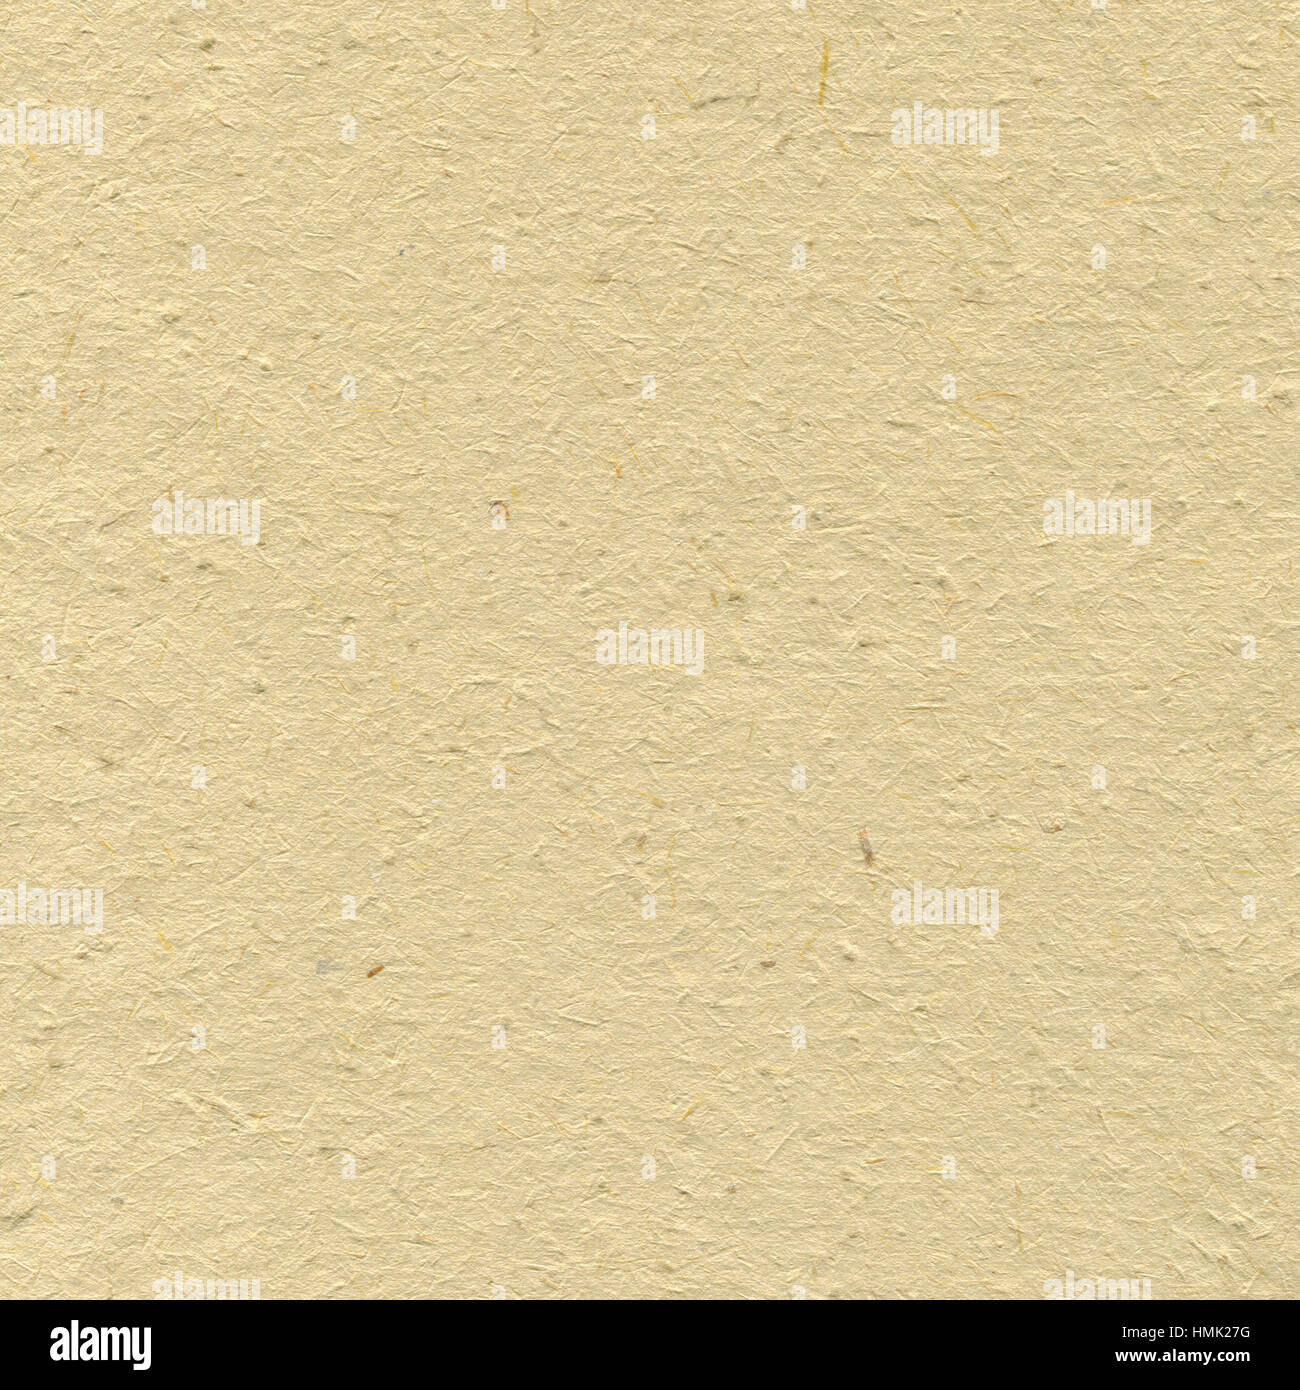 Beige Cardboard Rice Art Paper Texture Bright Rough Old